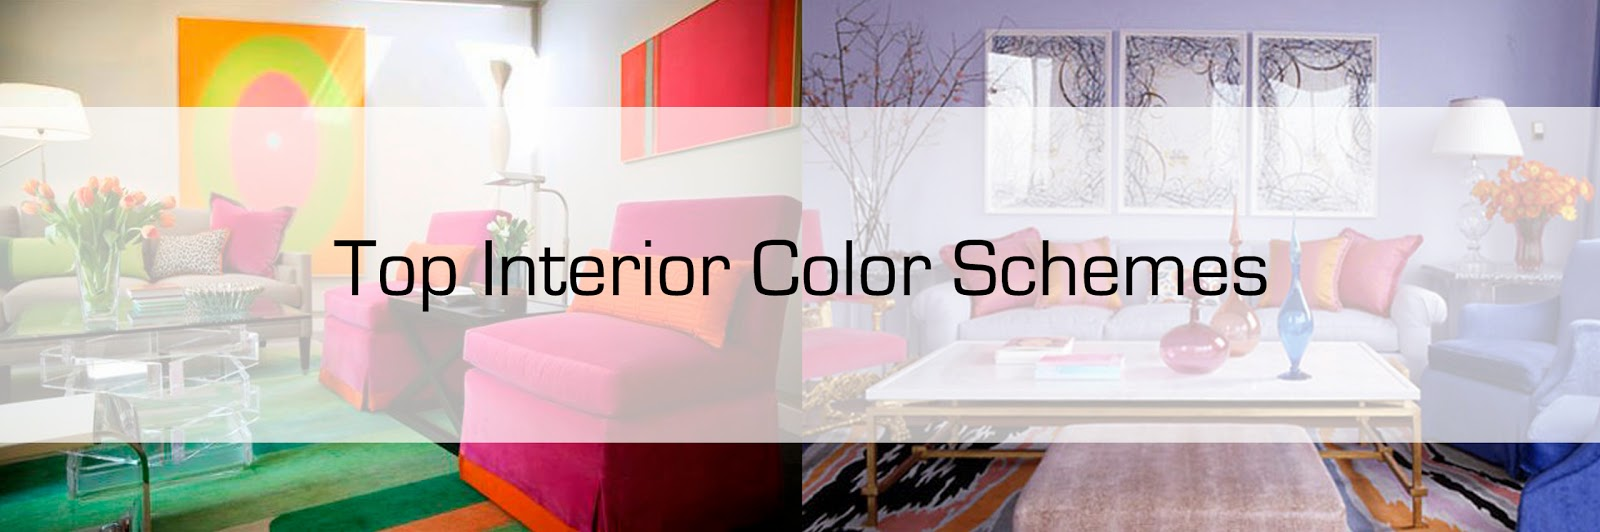 Interior Design Color Schemes Pleasing With Top Interior Design Color Schemes | VmDecor Pictures